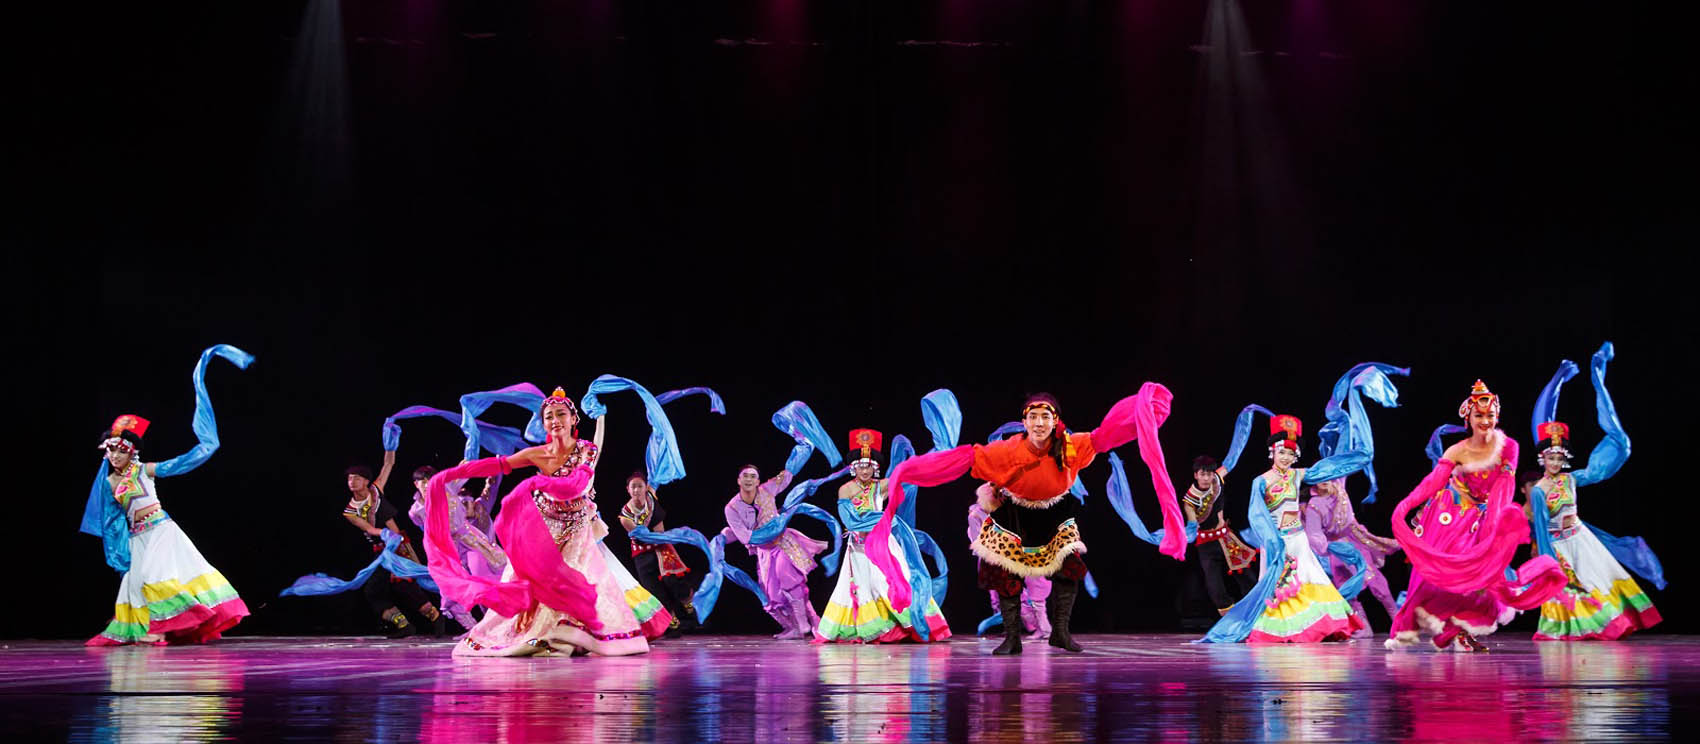 "Click to enlarge,  ""Chinese Culture & Arts"" will take place at 7 p.m. on Monday, Oct. 15, at the Dennis A. Wicker Civic Center in Sanford. An arts troupe from South-Central University for Nationalities will perform dance, vocal, instrumental, and martial arts presentations. The event is presented by Central Carolina Community College's Confucius Classroom. Admission to the show is free. For more information on CCCC's Confucius Classroom, visit the college's website, www.cccc.edu/confucius."